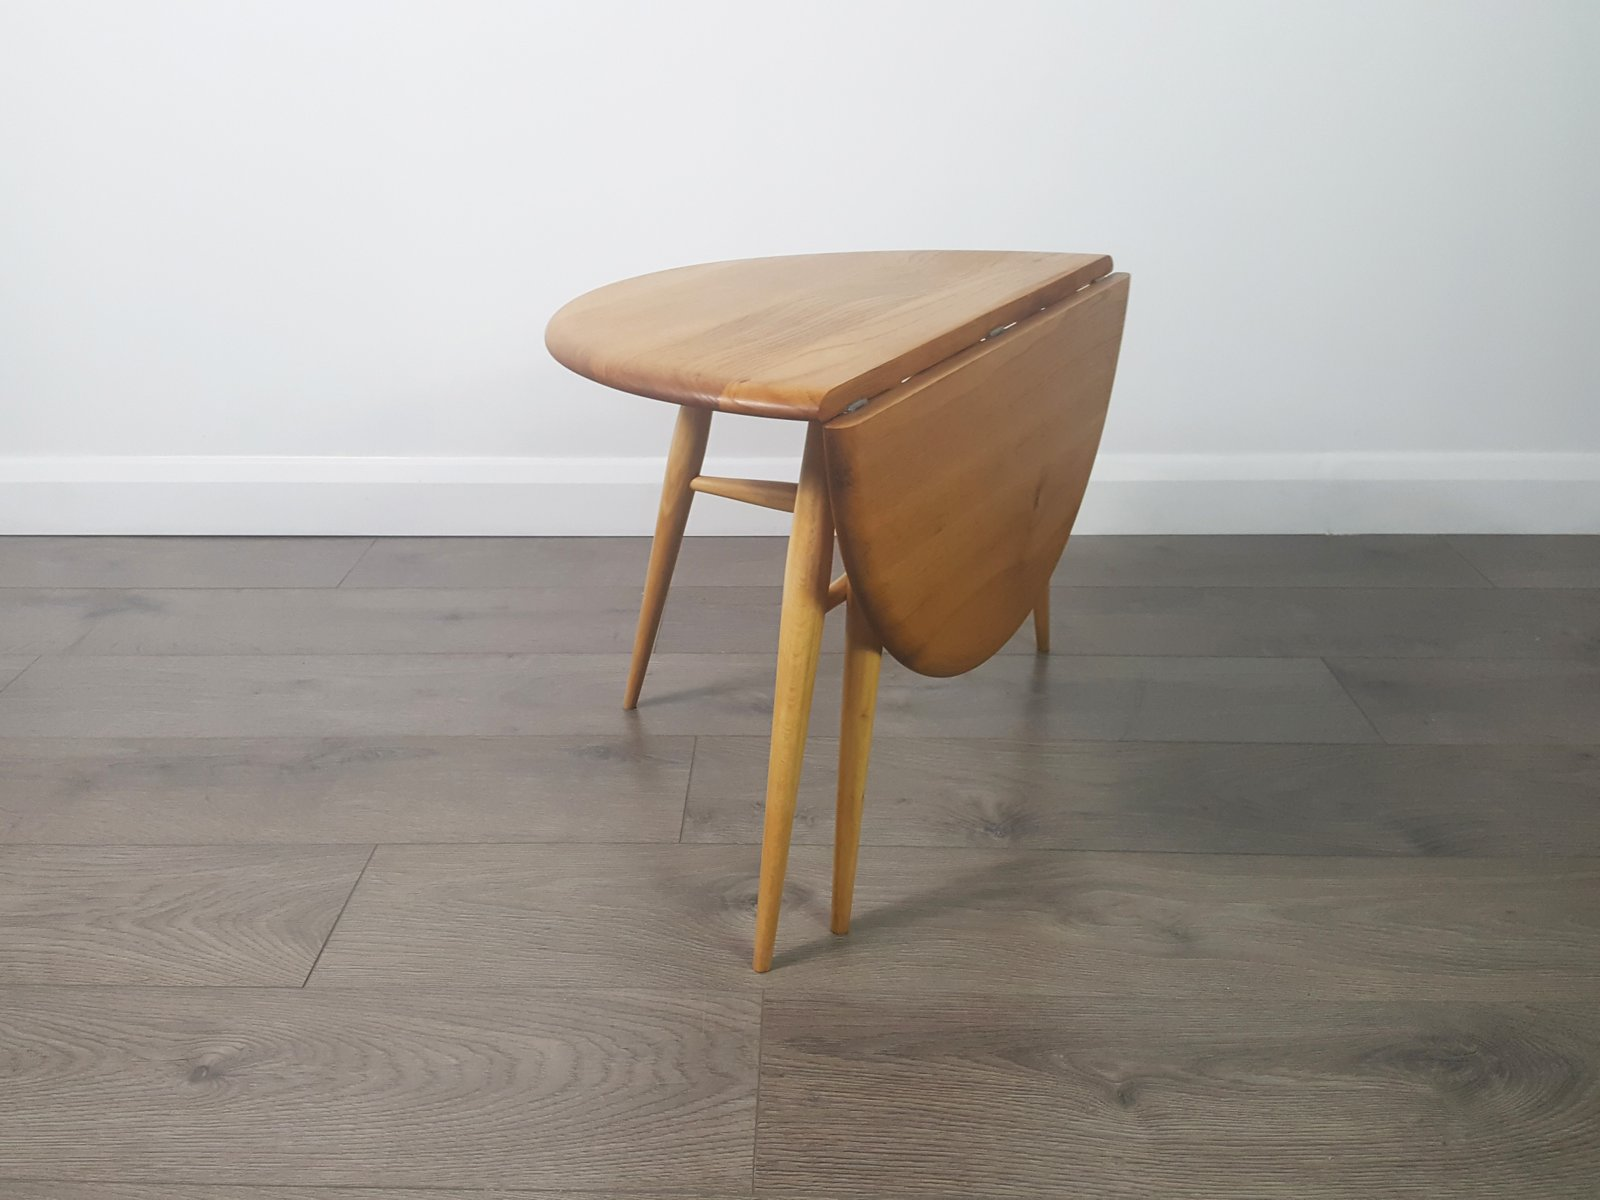 Vintage Folding Coffee Table By Lucian Ercolani For Ercol